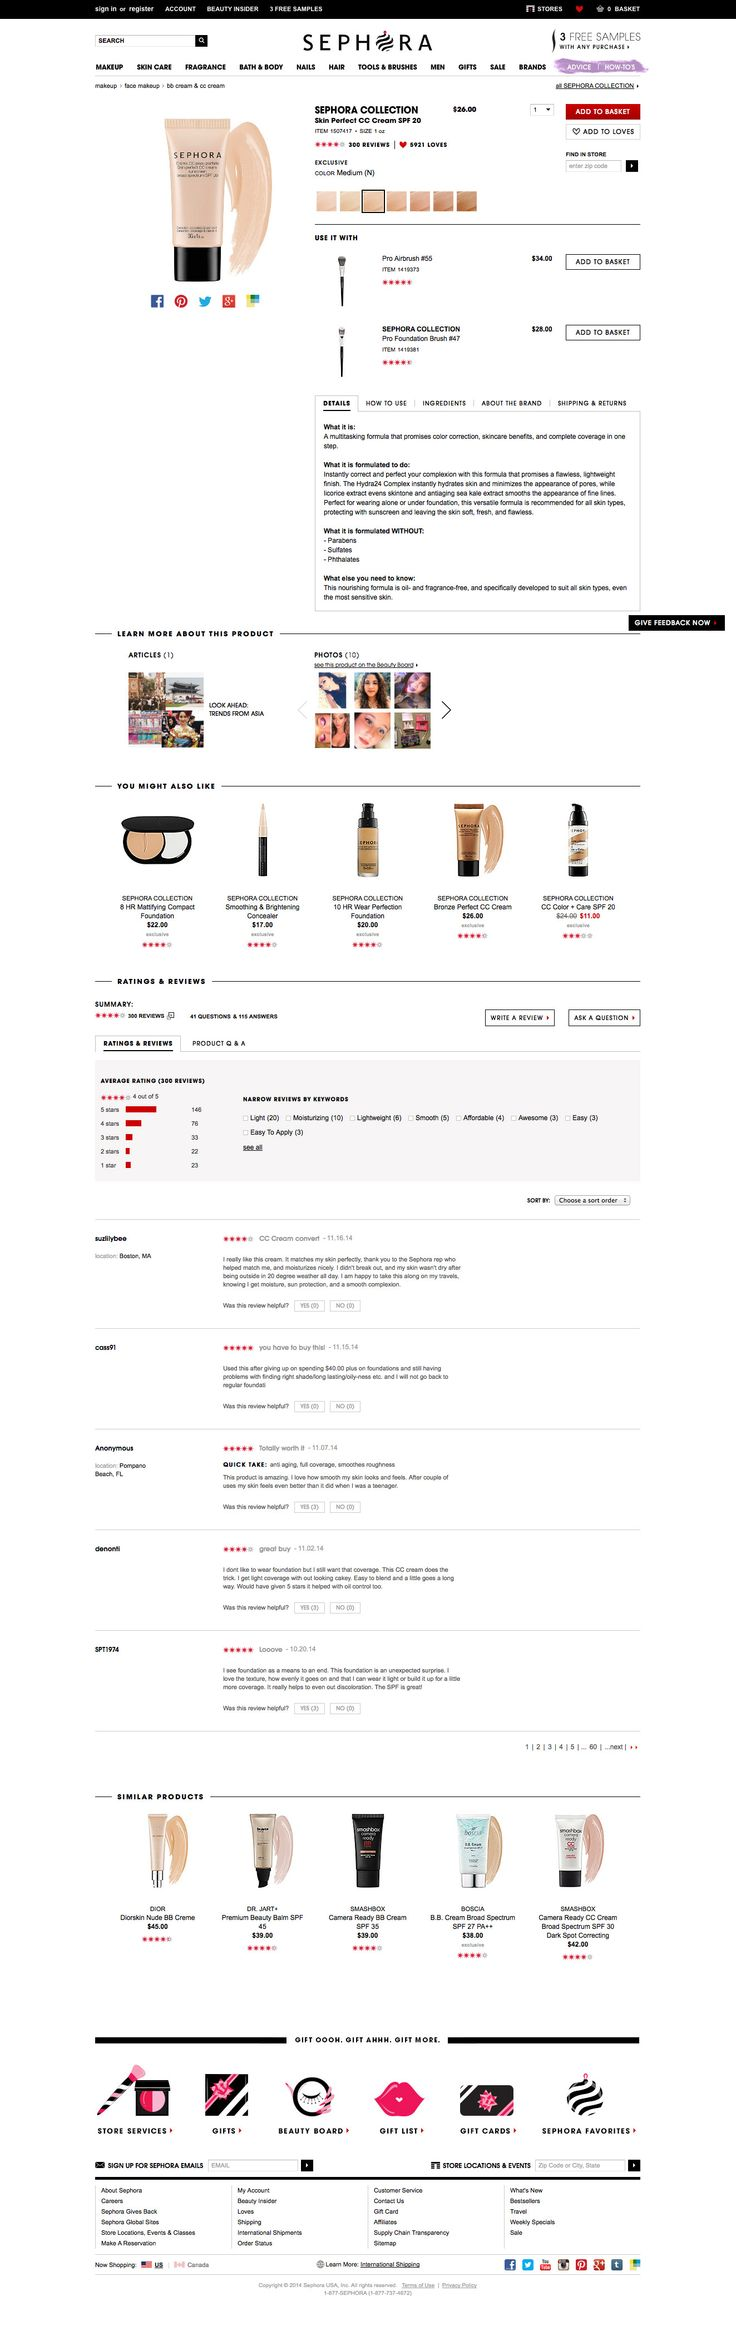 Sephora Desktop Product Page - http://www.cartrepublic.com/gallery/2014/12/sephora-desktop-product-page/